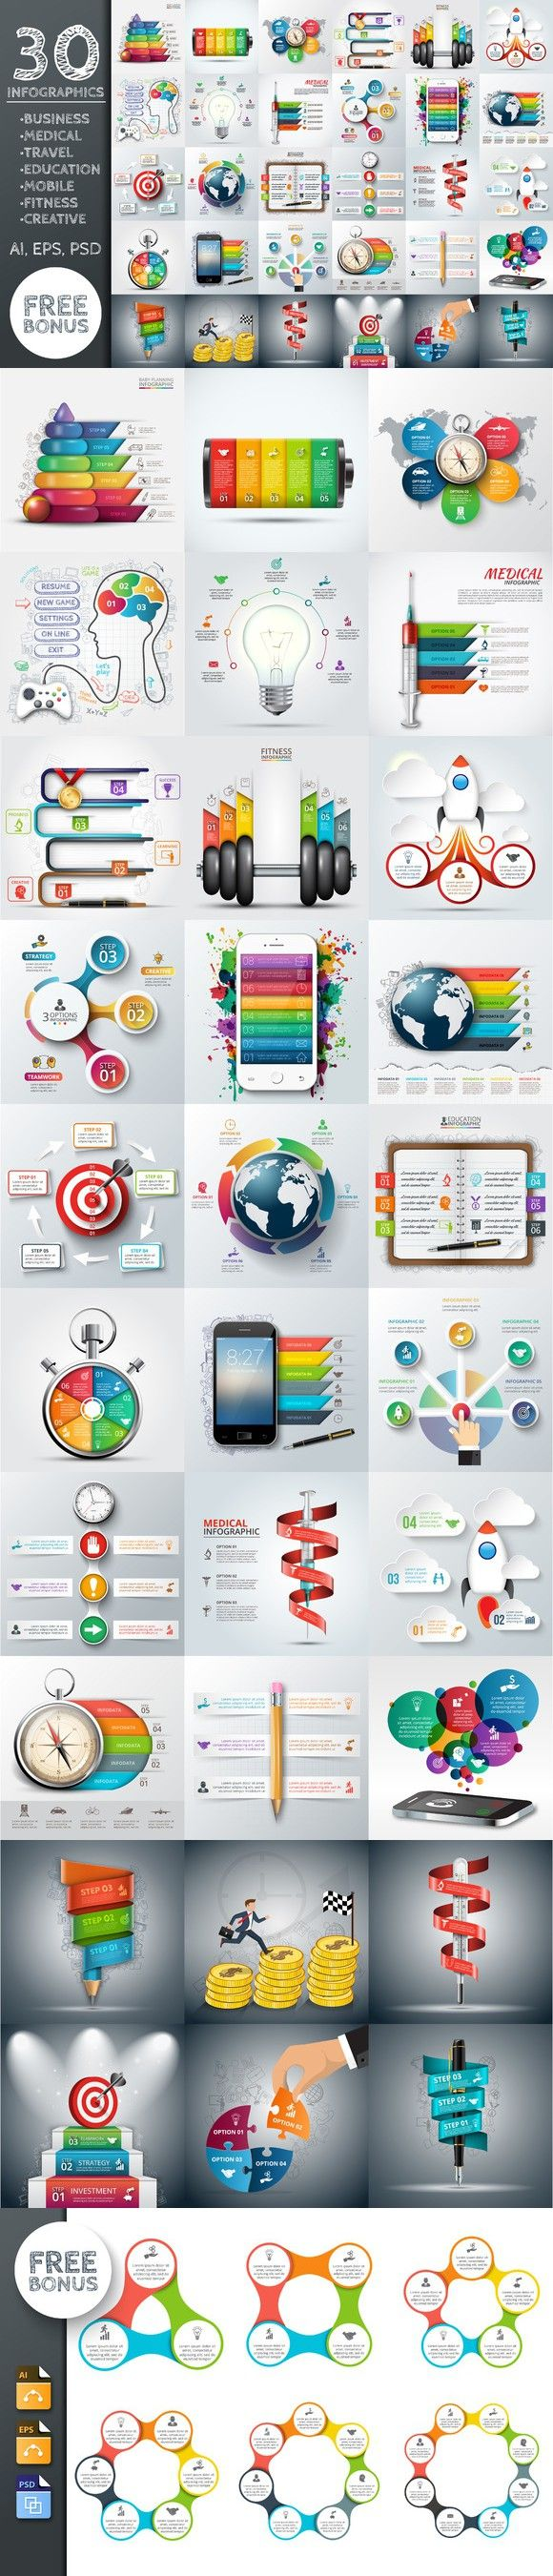 30 business infographic templates. Business Infographic. $15.00